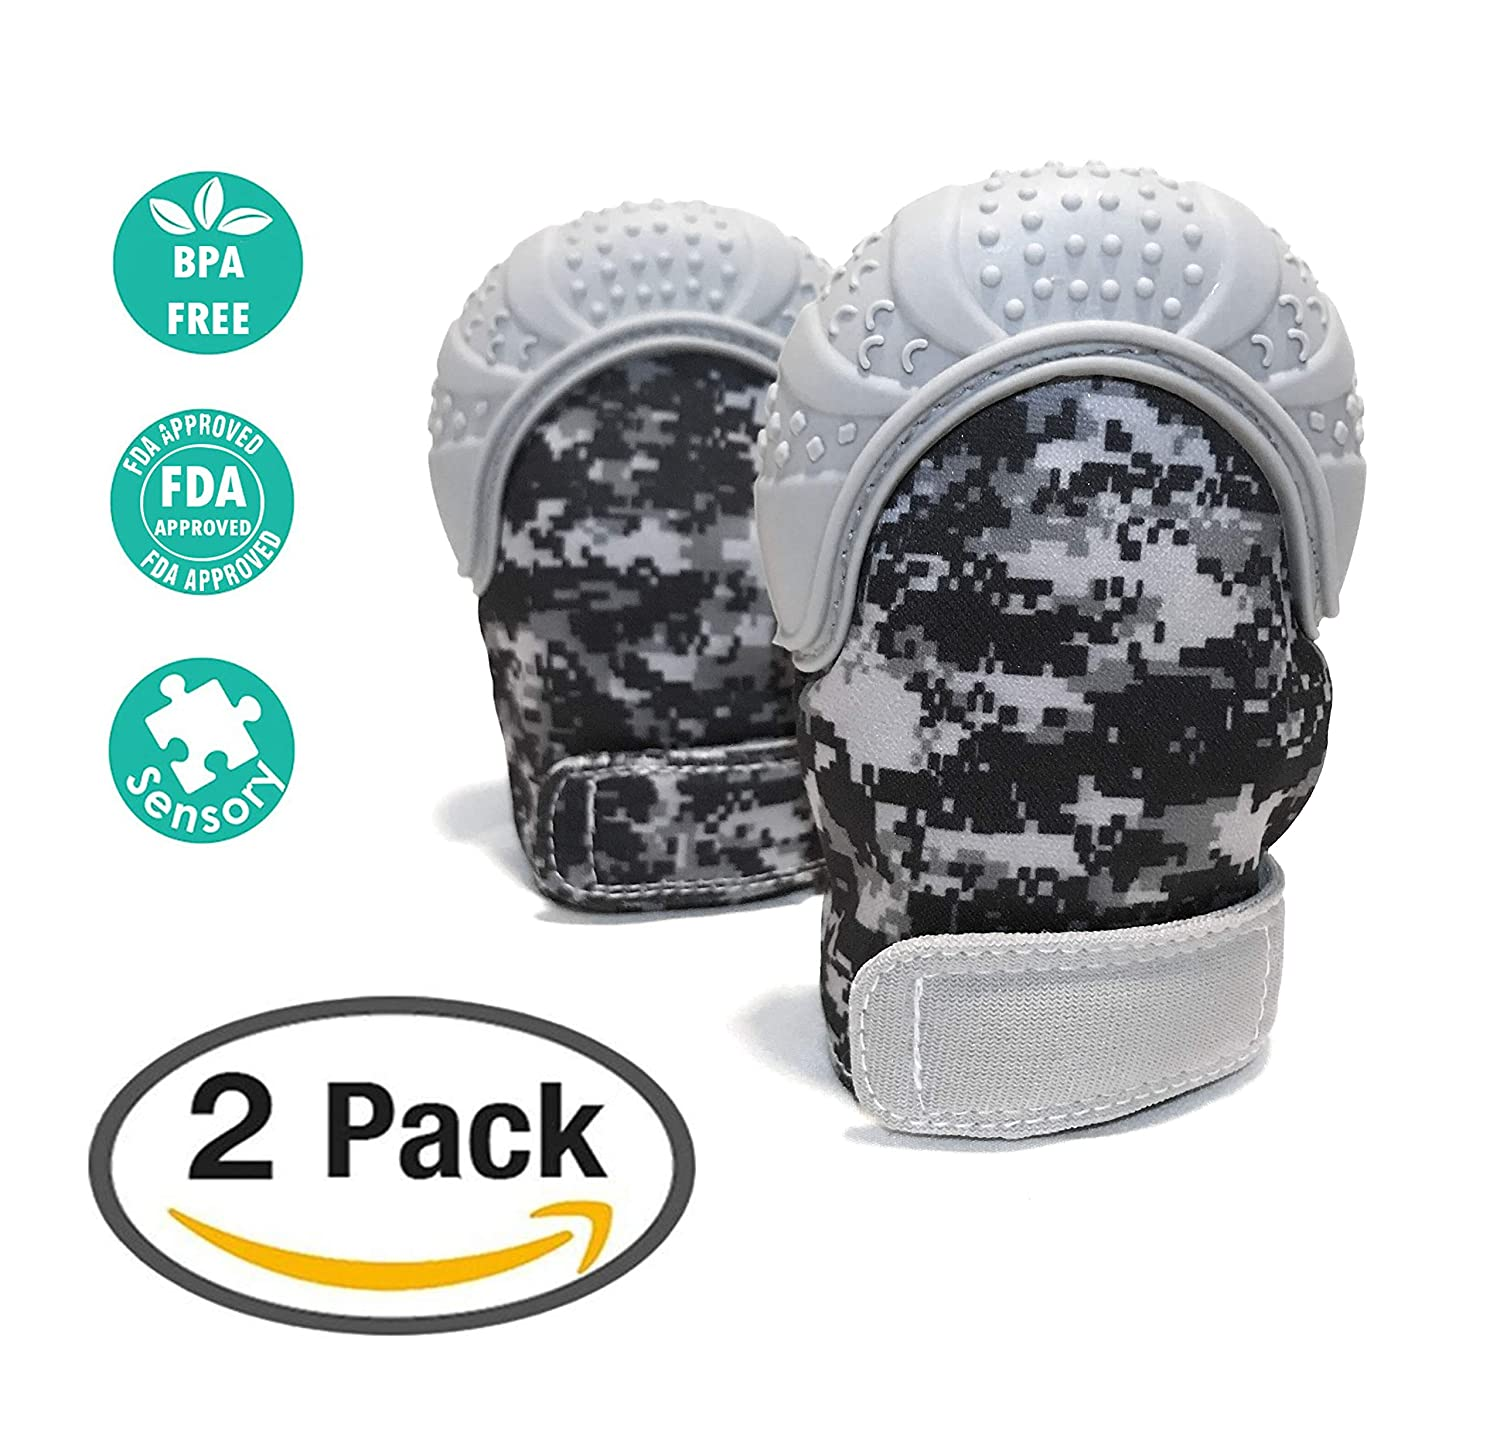 Baby Teething Mitten 2 Pack|Unique Digital Camo Print|Self-Soothing//Pain Relief|BPA-Free//Food-Grade Silicone Includes 2 Free Hygienic Carrying Bags Shenzhen Wo Silicone Technology Co Ltd